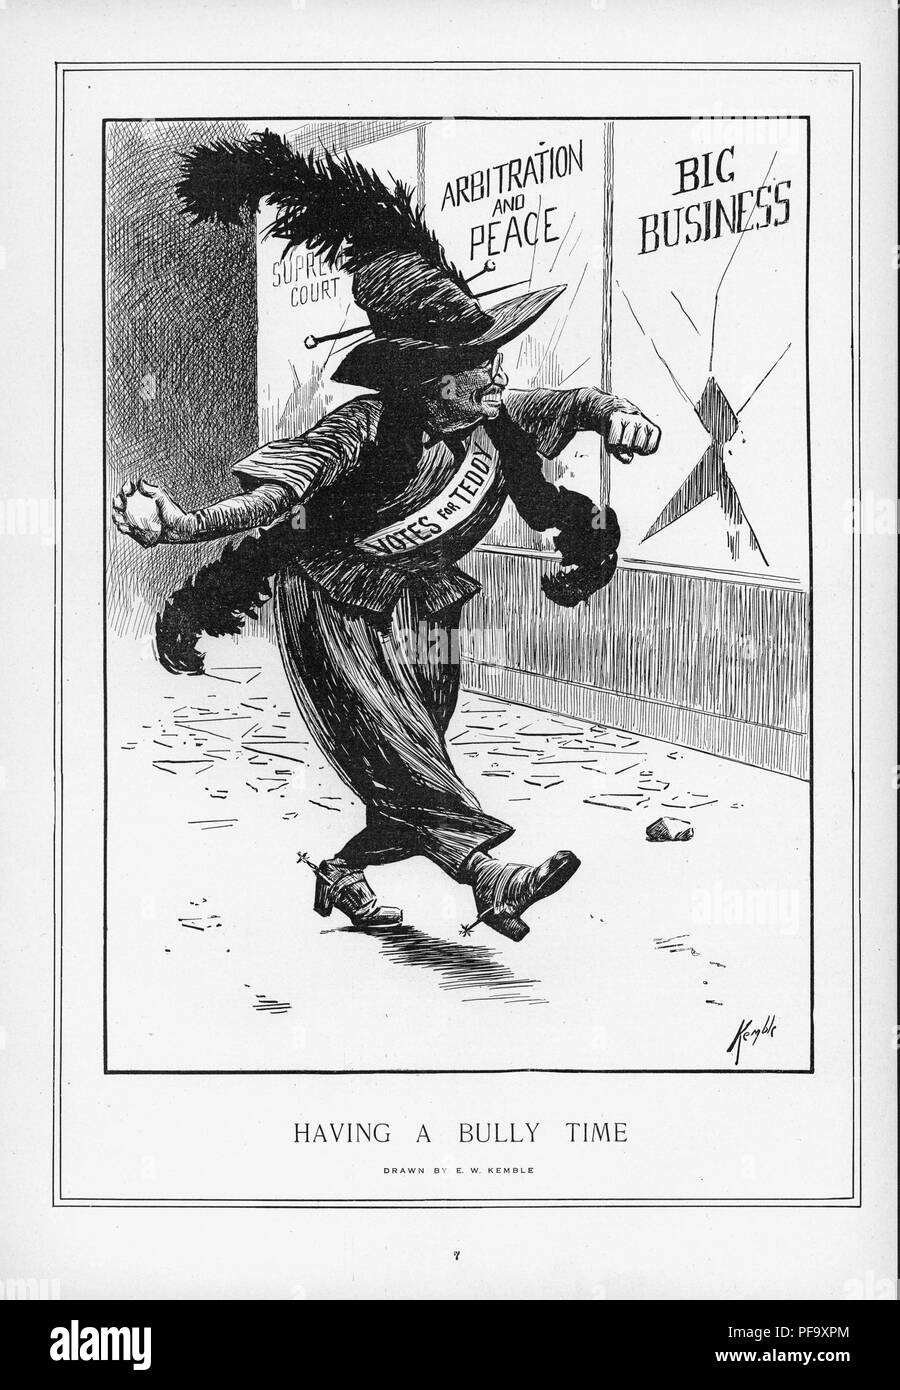 Black and white illustration, depicting Theodore Roosevelt as a militant suffragette, wearing Edwardian Women's clothing, with a feather boa and large feather in his hat, and breaking shop windows on behalf of the cause, referencing his advocacy for the women's suffrage movement when he ran for President on the Bull Moose ticket, titled 'Having a Bully Time, ' illustrated by EW Kemble, ' and created for the American market, 1912. () Stock Photo